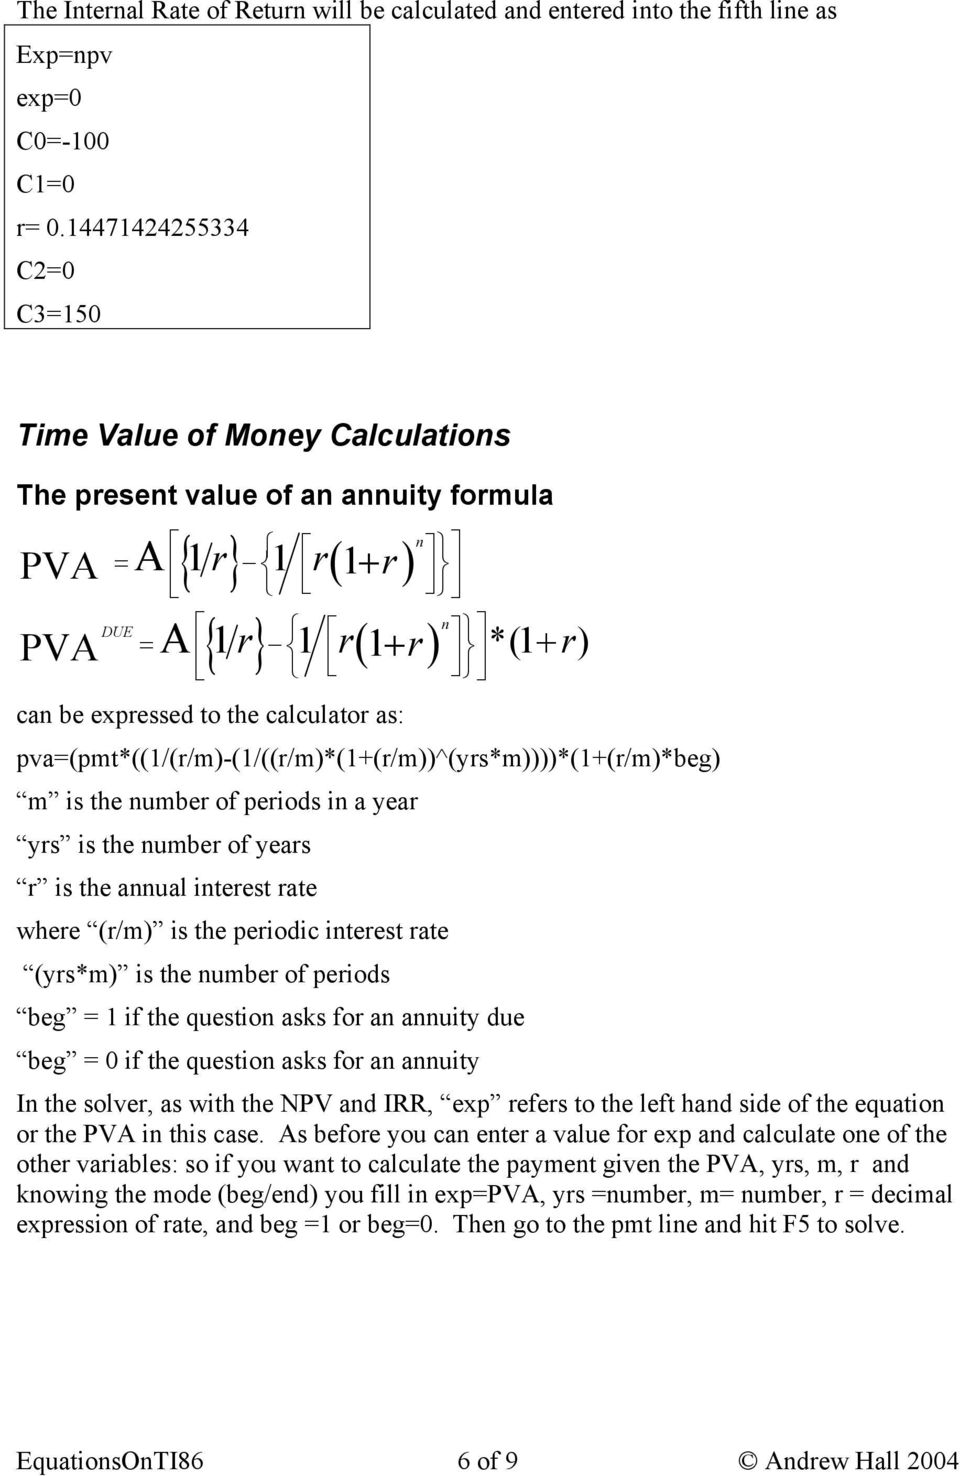 pva=(pmt*((1/(r/m)-(1/((r/m)*(1+(r/m))^(yrs*m))))*(1+(r/m)*beg) m is the umber of periods i a year yrs is the umber of years r is the aual iterest rate where (r/m) is the periodic iterest rate